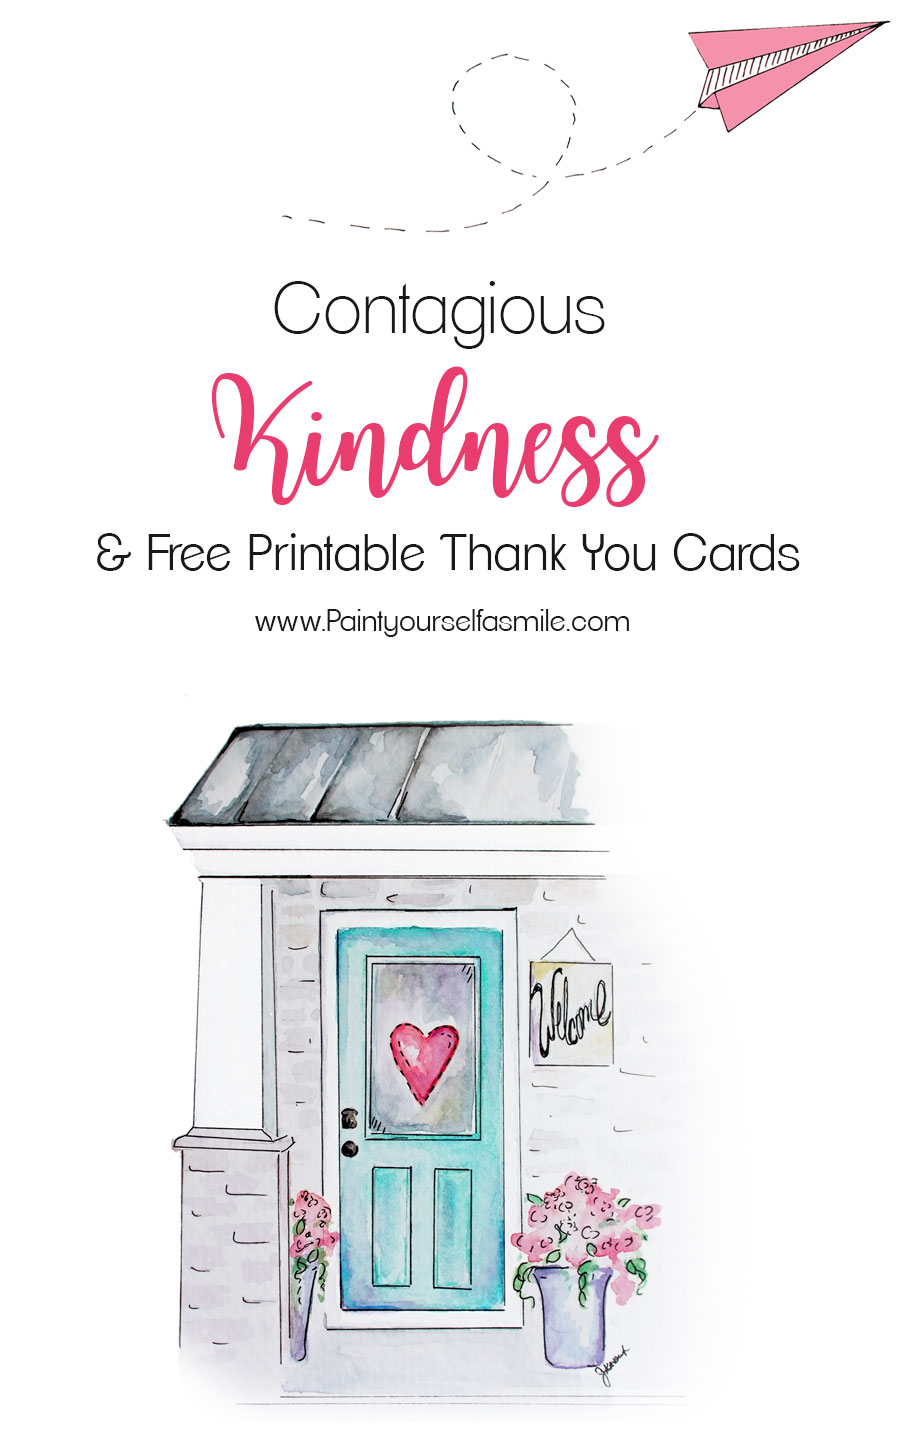 graphic about Free Printable Thank You titled Contagious Kindness Tags Totally free Printable Thank By yourself Playing cards